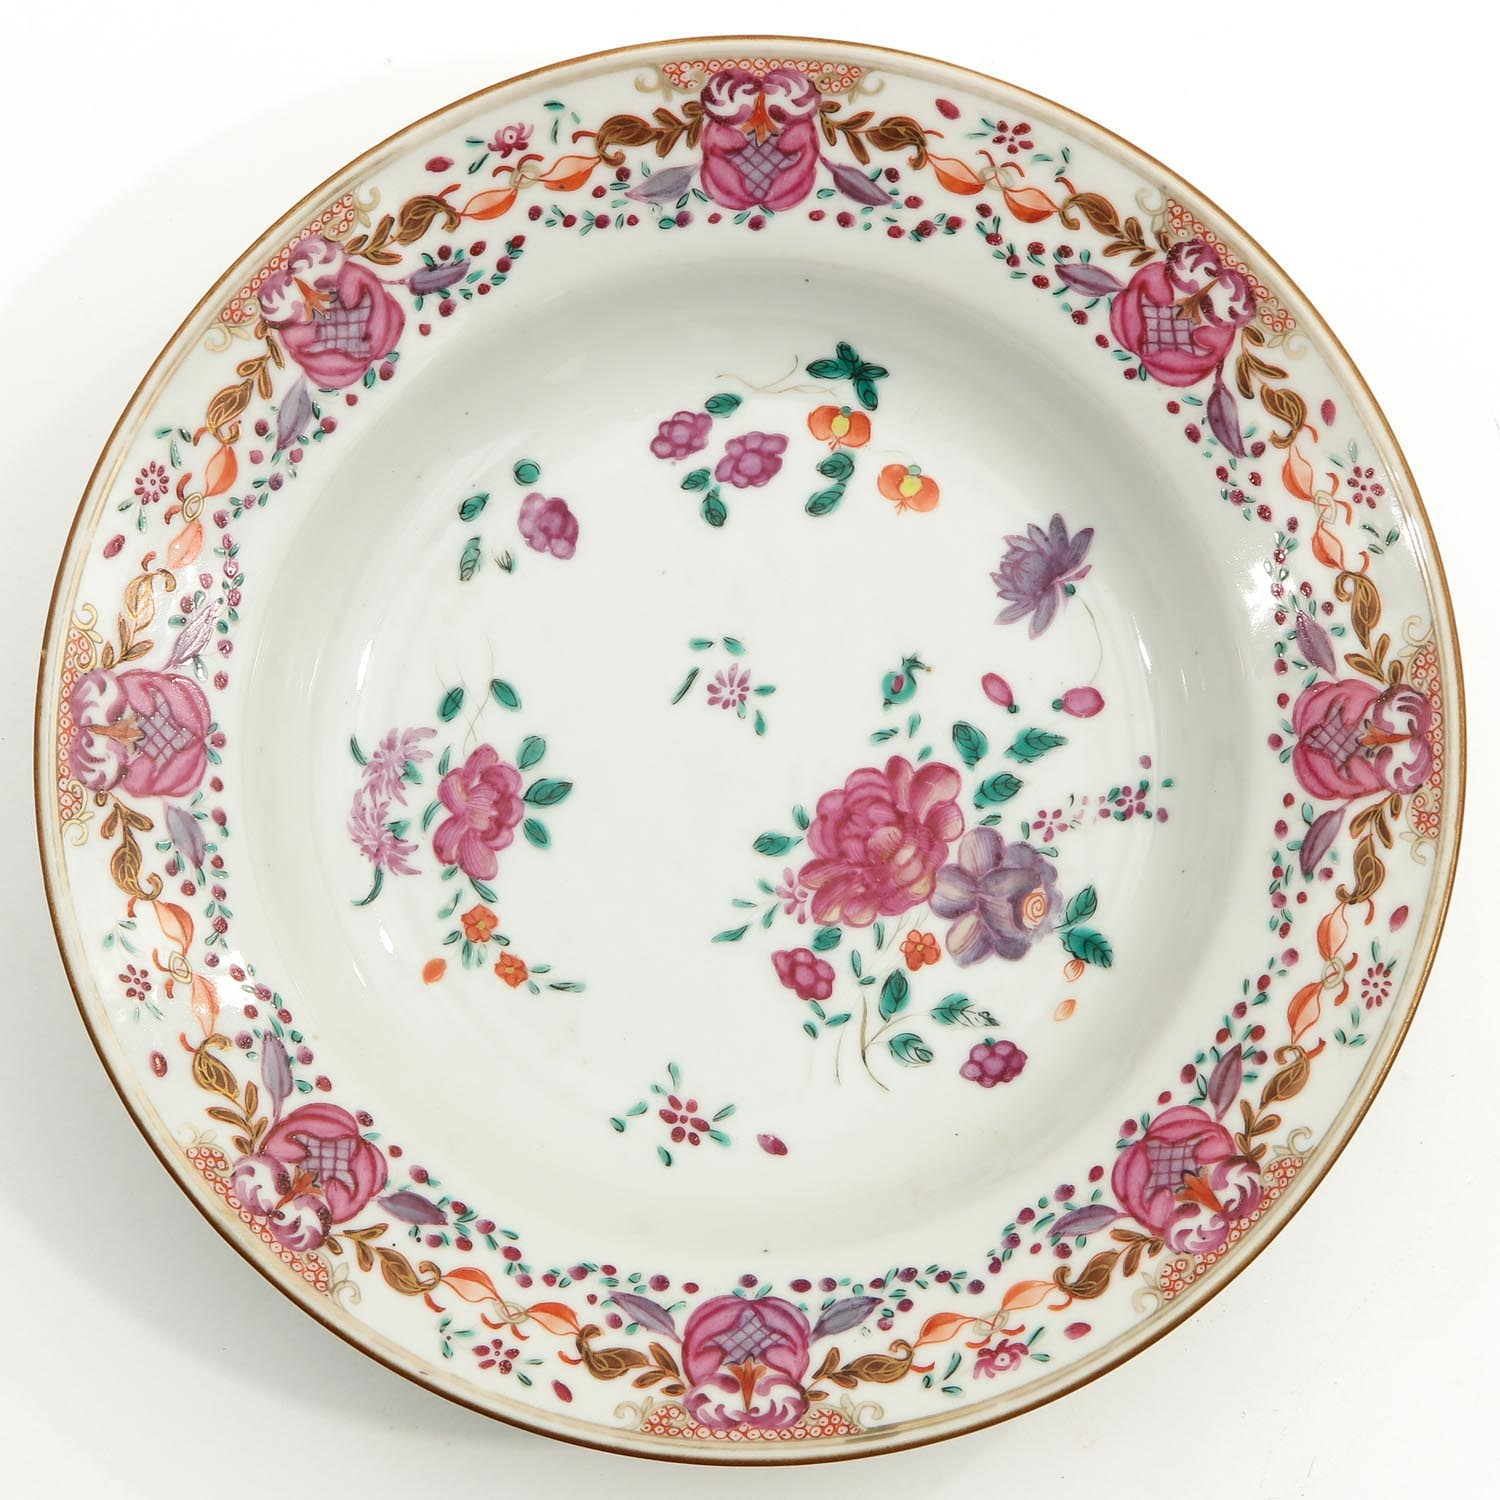 A Series of 3 Famille Rose Plates - Image 7 of 10